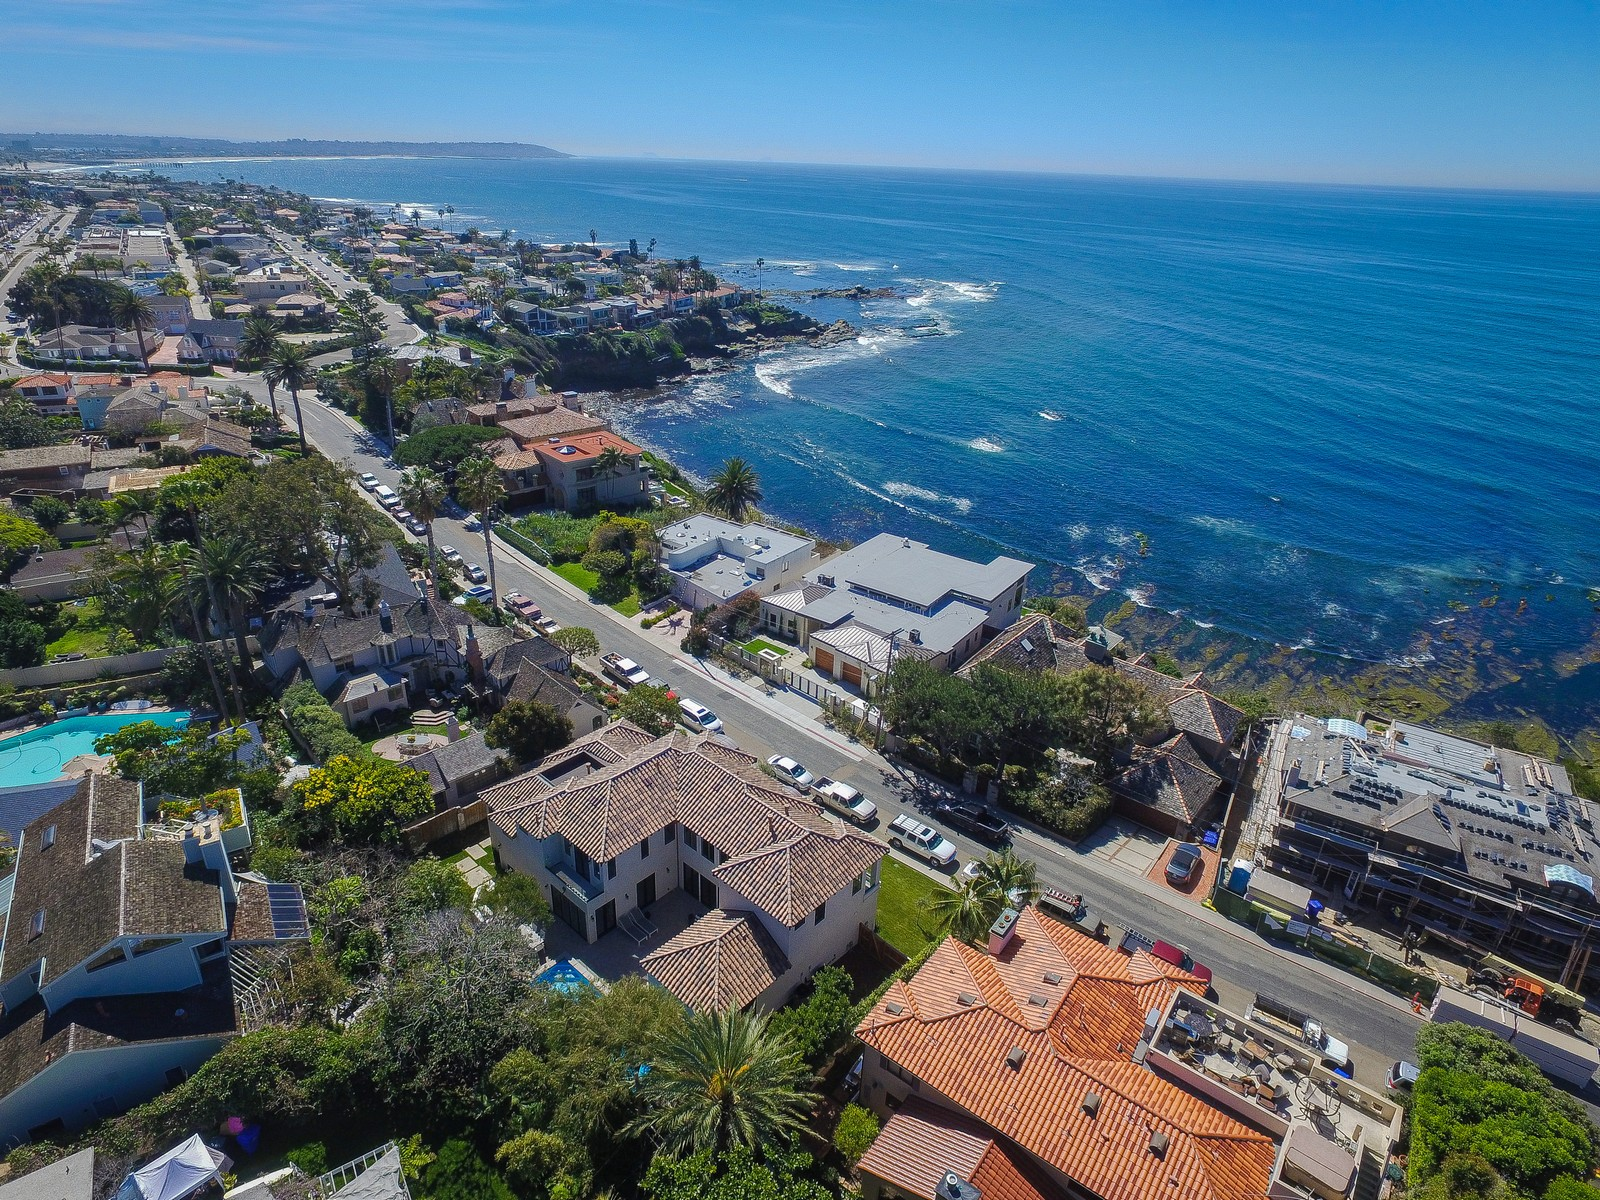 Single Family Home for Sale at 5915 Camino De La Costa La Jolla, California, 92037 United States